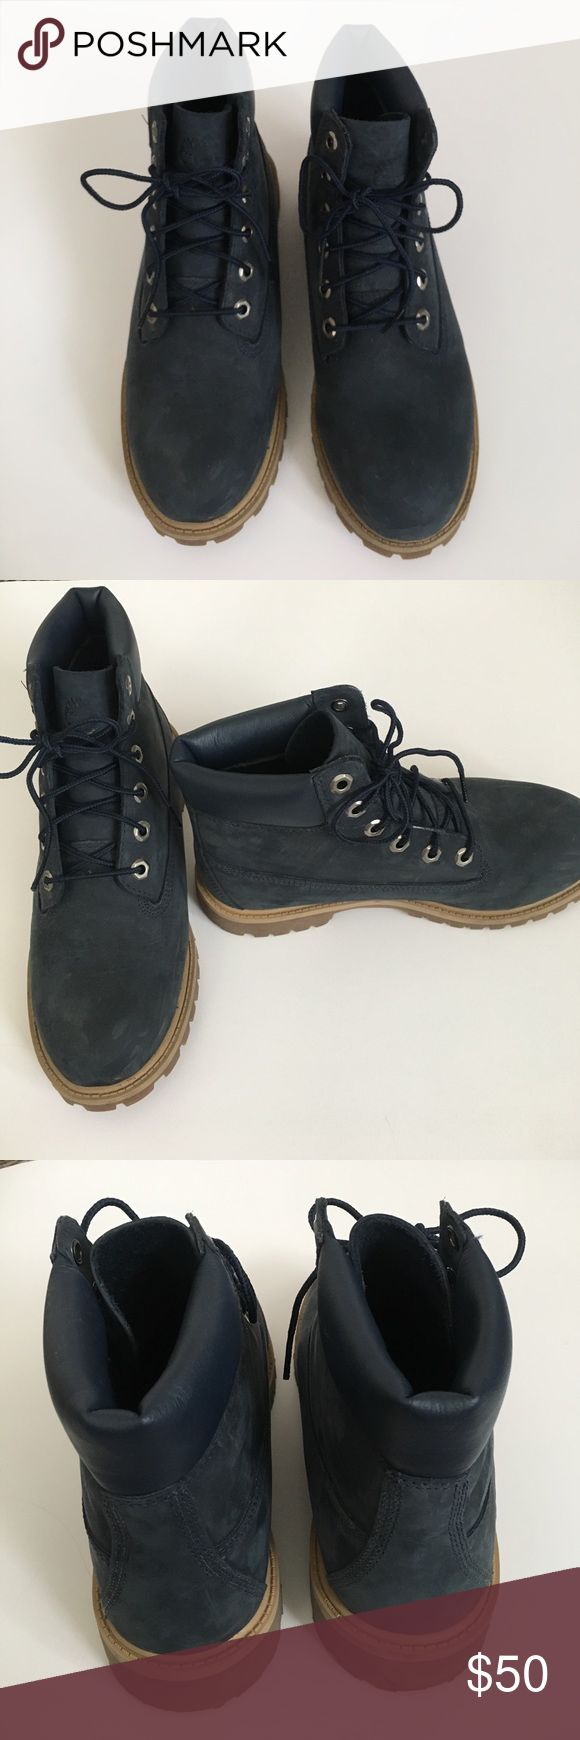 Blue Timberland boots Men's 6.5, fits women's 8.5/9! Perfect condition worn only once! Timberland Shoes Lace Up Boots